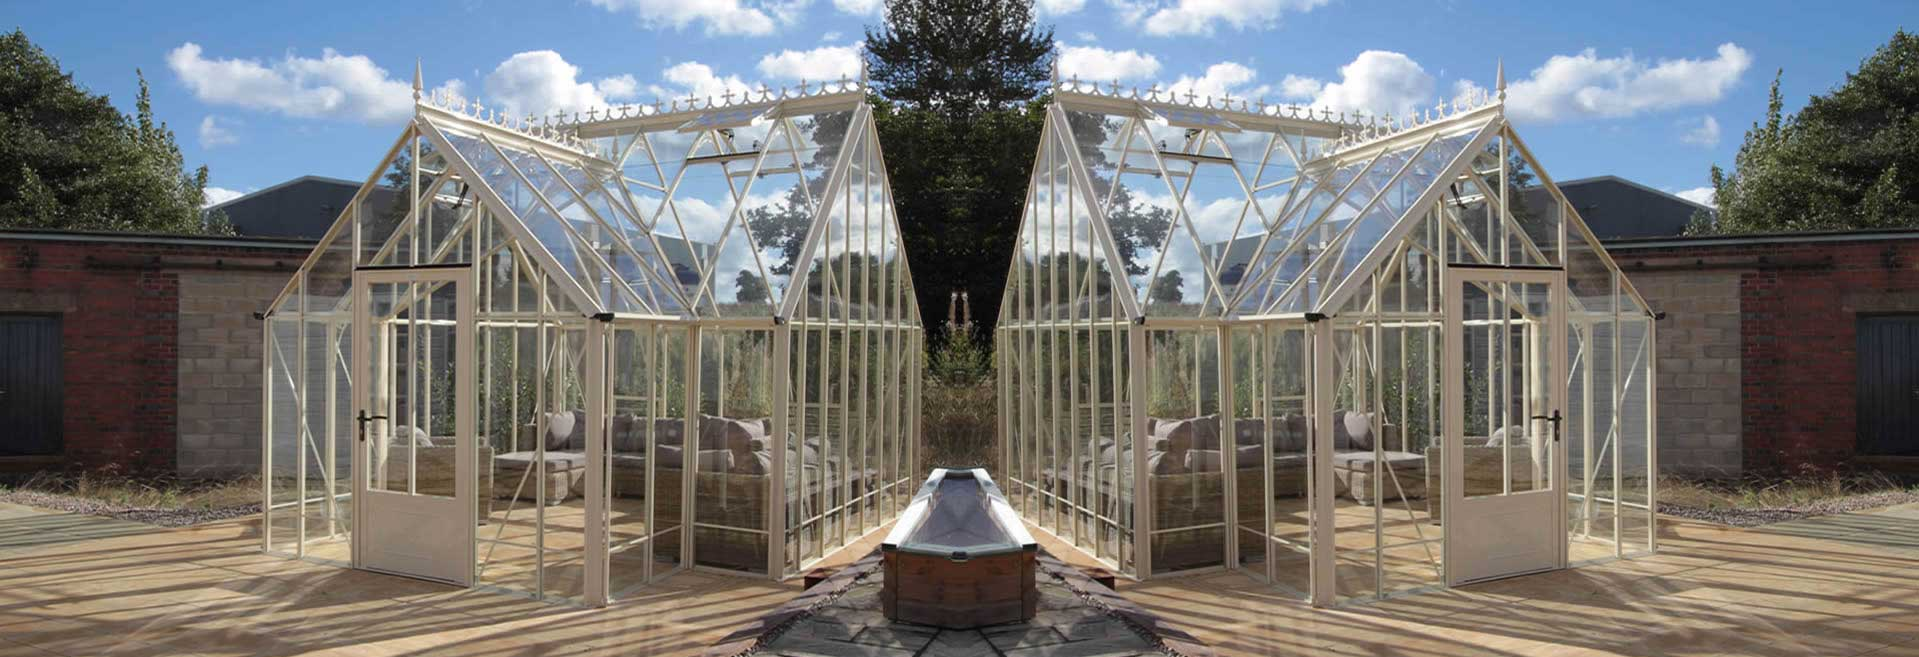 Robinsons Reicliffe Victorian Greenhouses